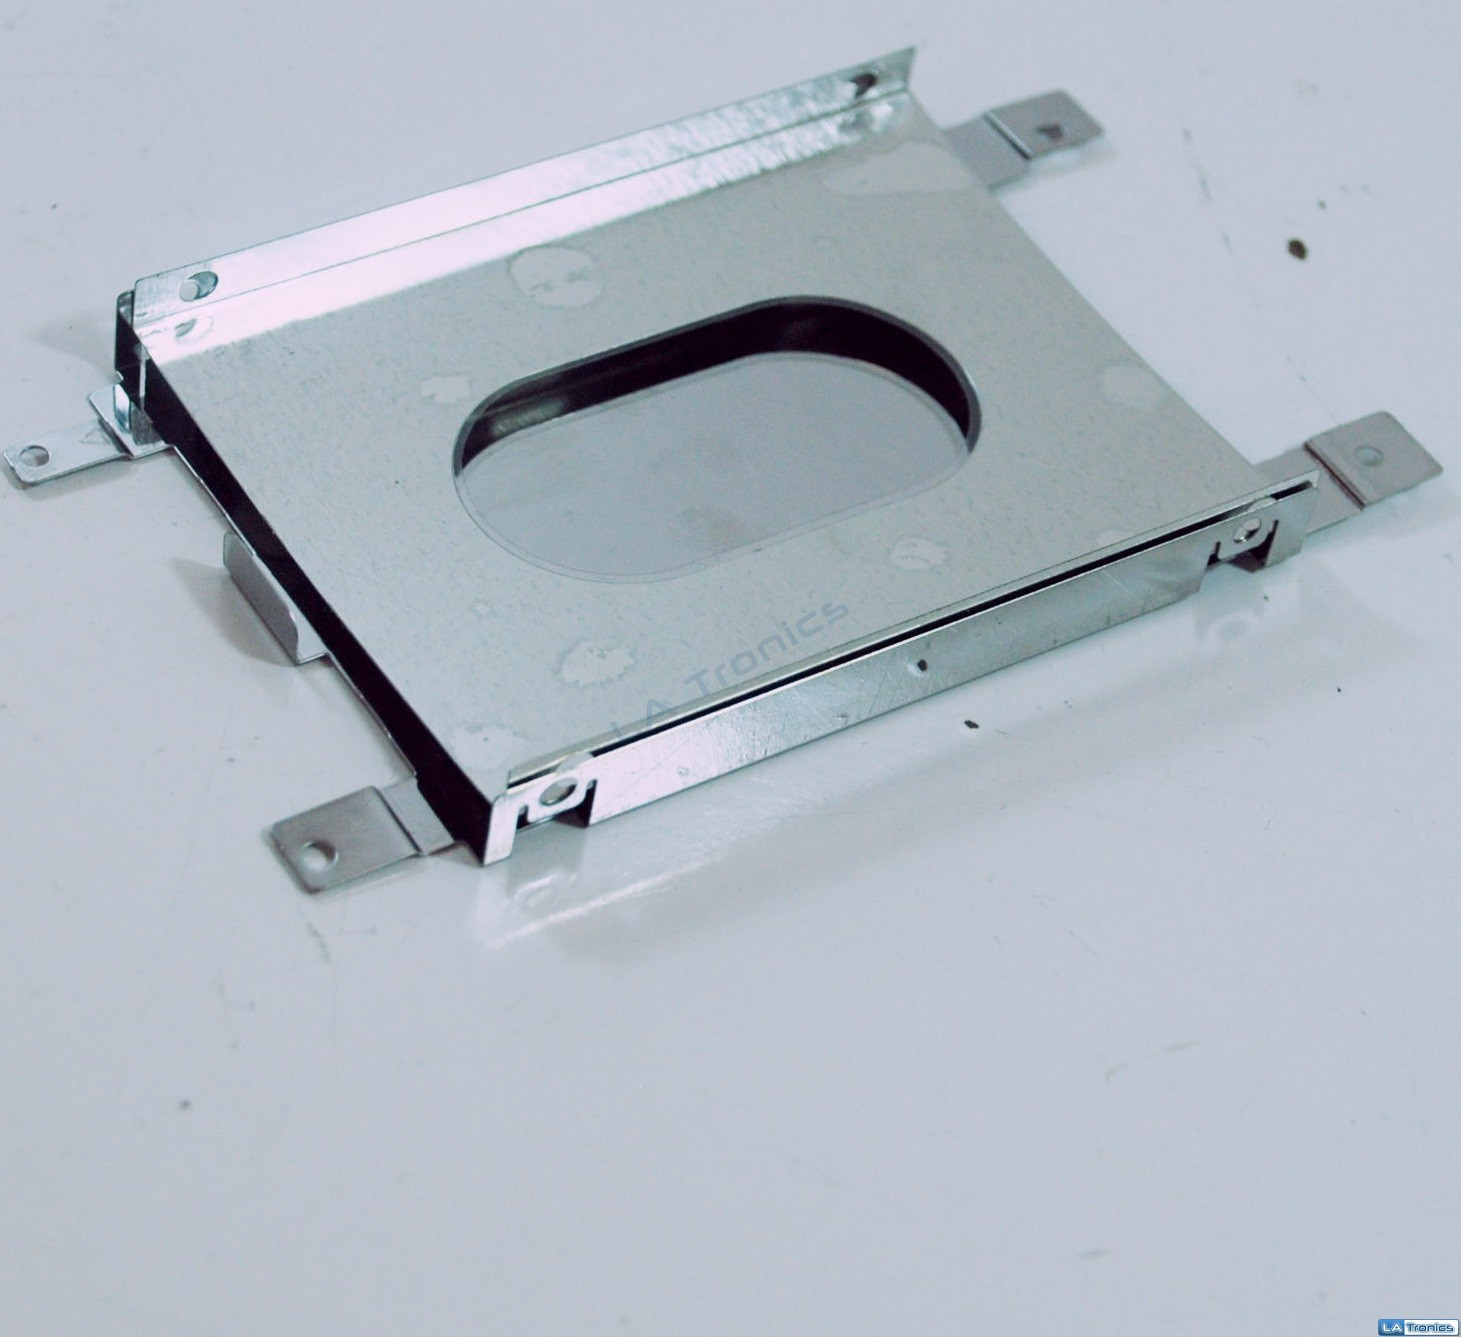 Sony Vaio Fit SVF14 SVF142190x HDD Hard Drive Caddy Tray 3EHK8HBN020 SUS430